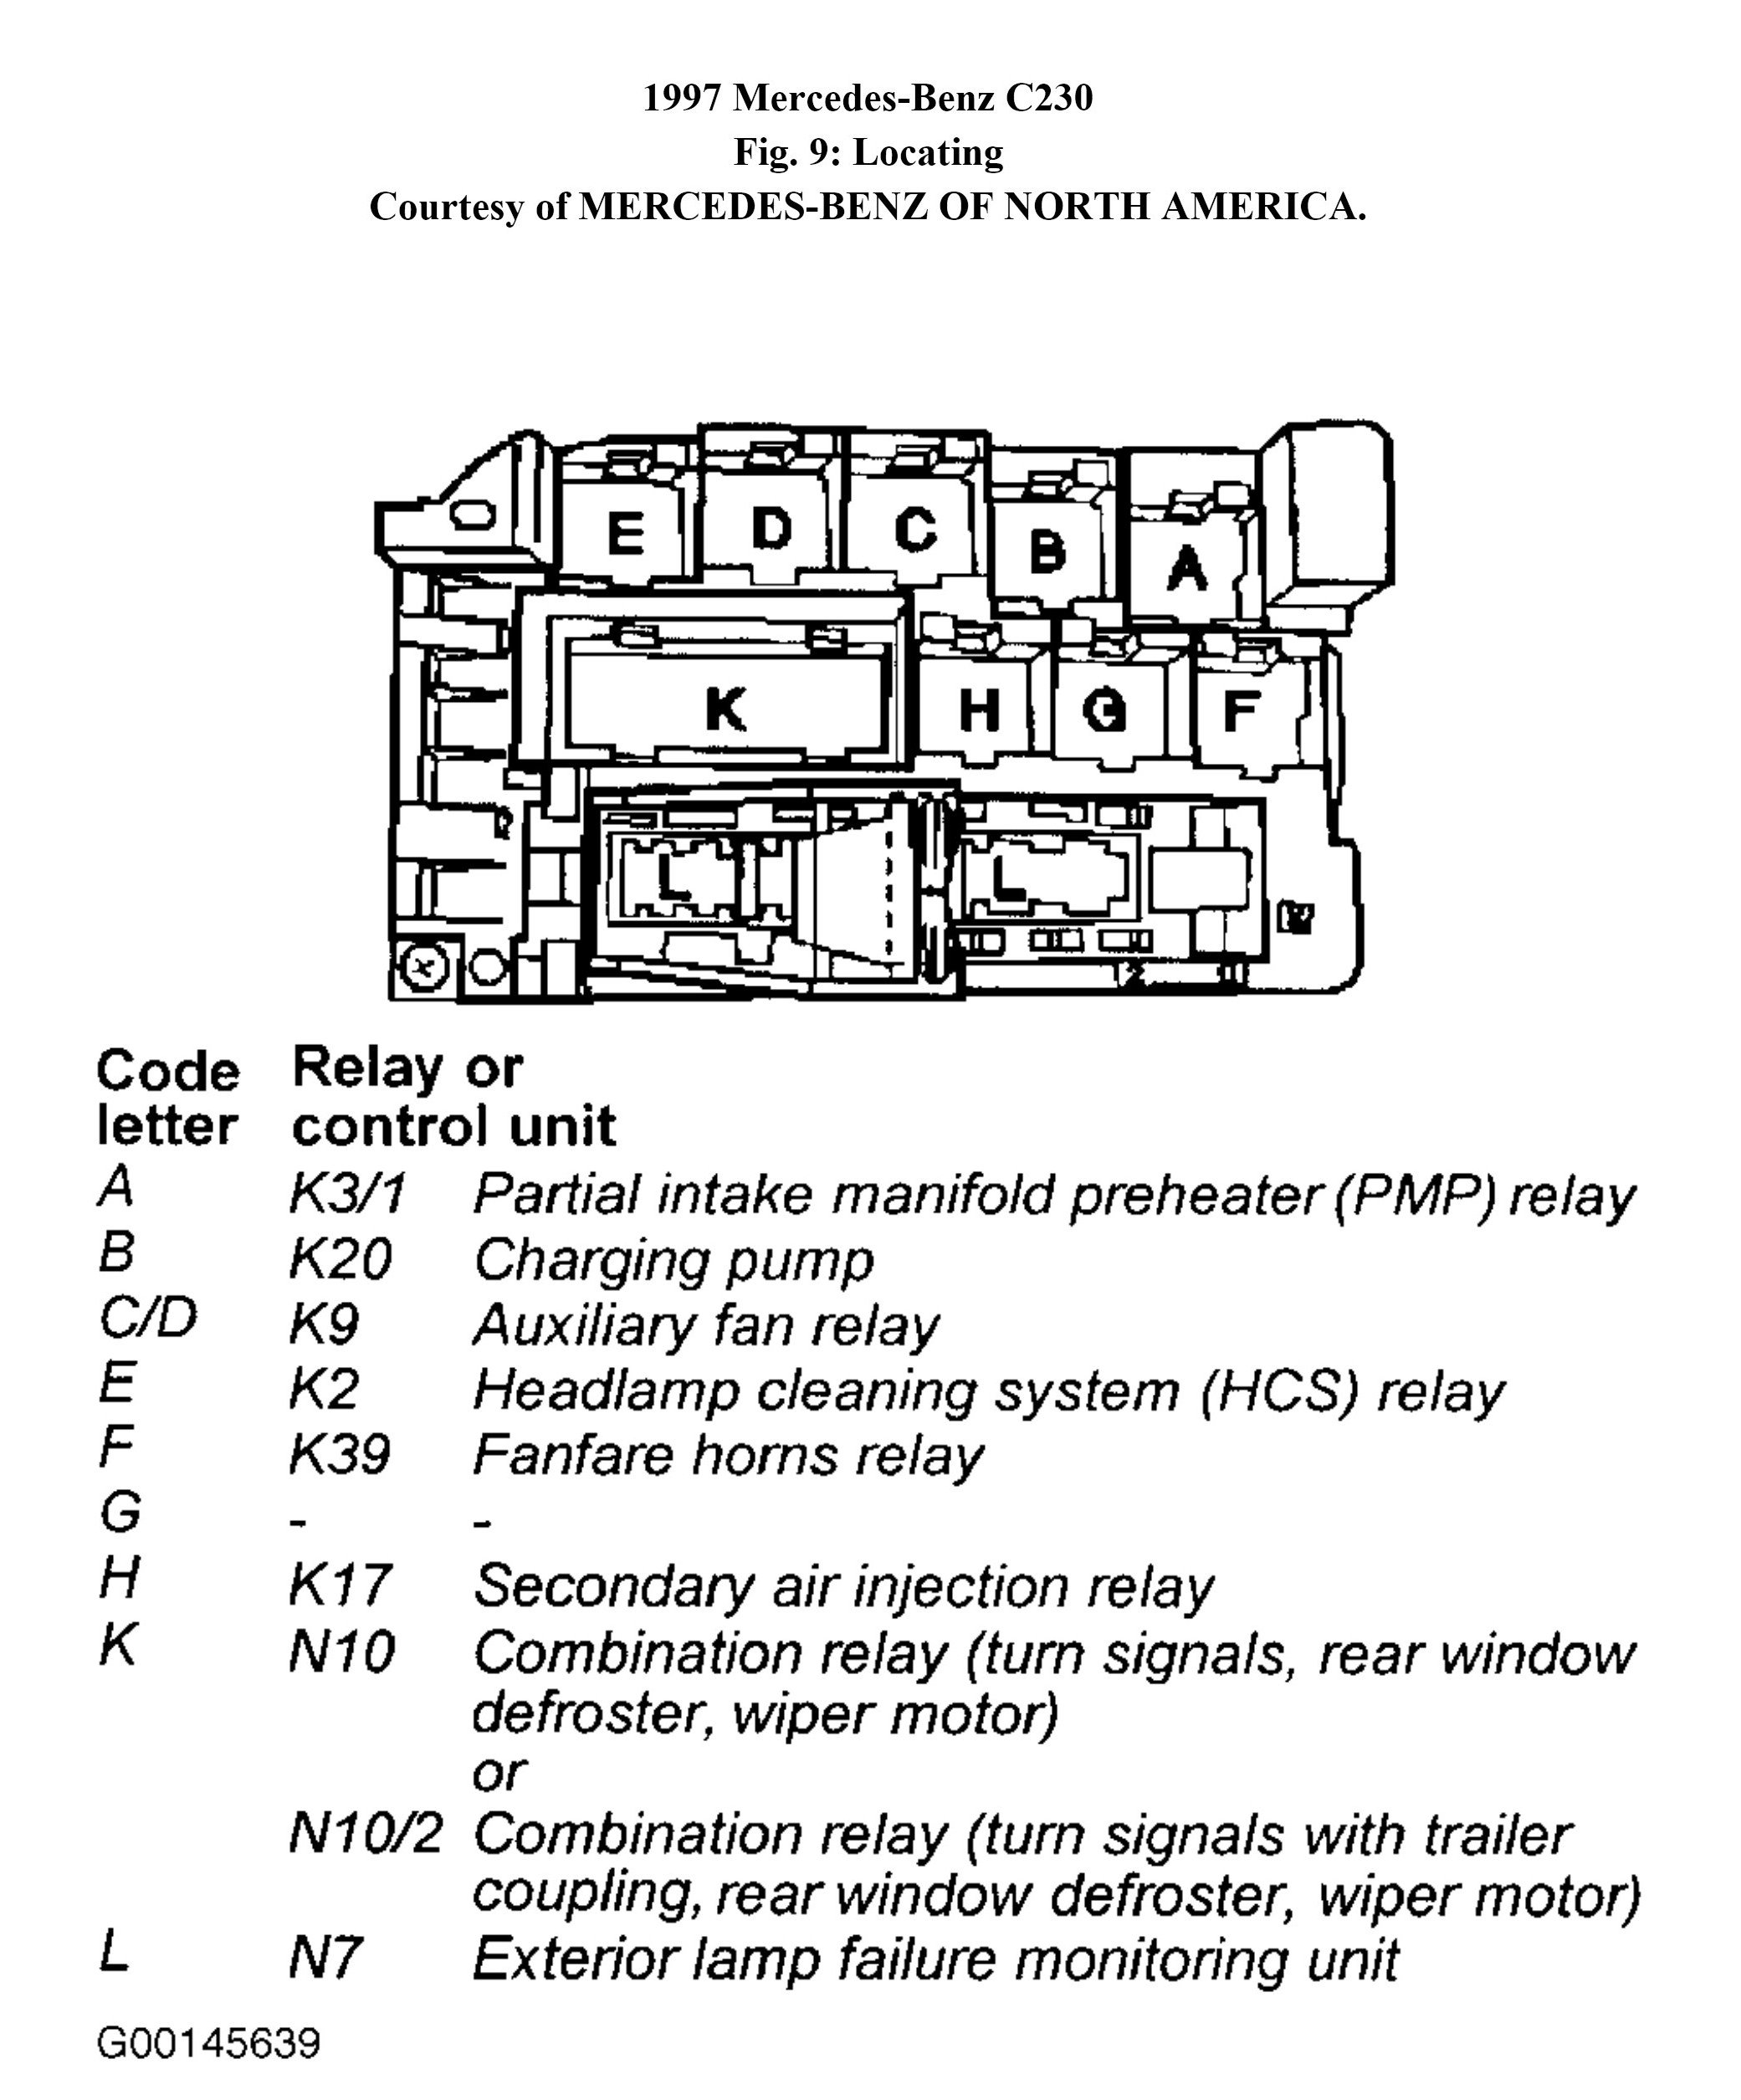 2010 07 01_042215_relay_0000 mercedes c240 engine diagram on mercedes download wirning diagrams 2003 mercedes c240 fuse box diagram at mifinder.co